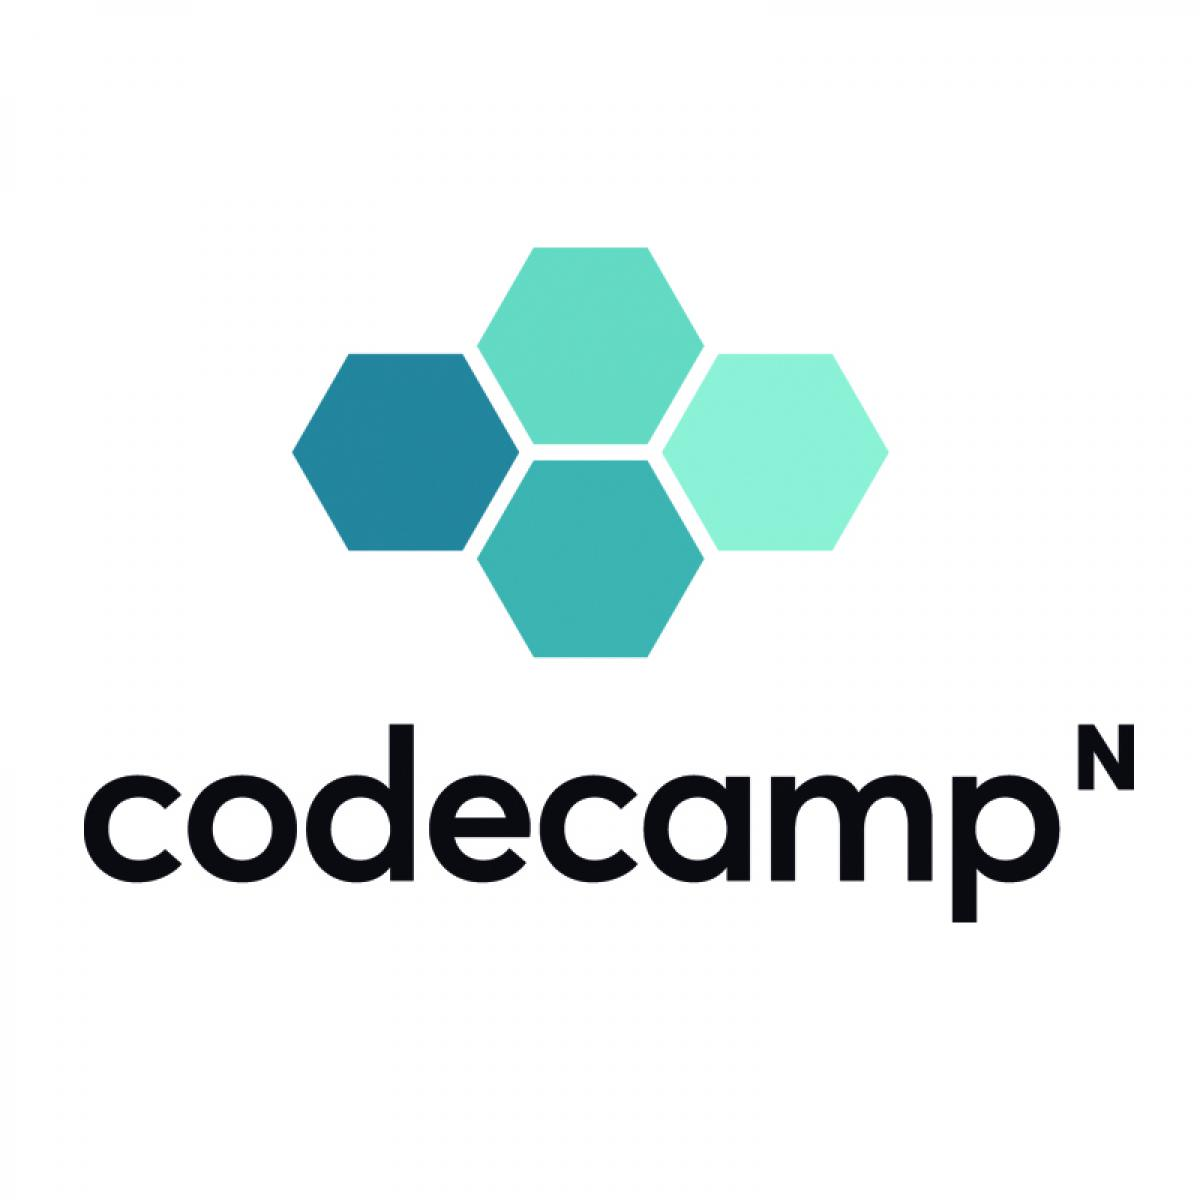 Colonia Nova - CodeCamp:N